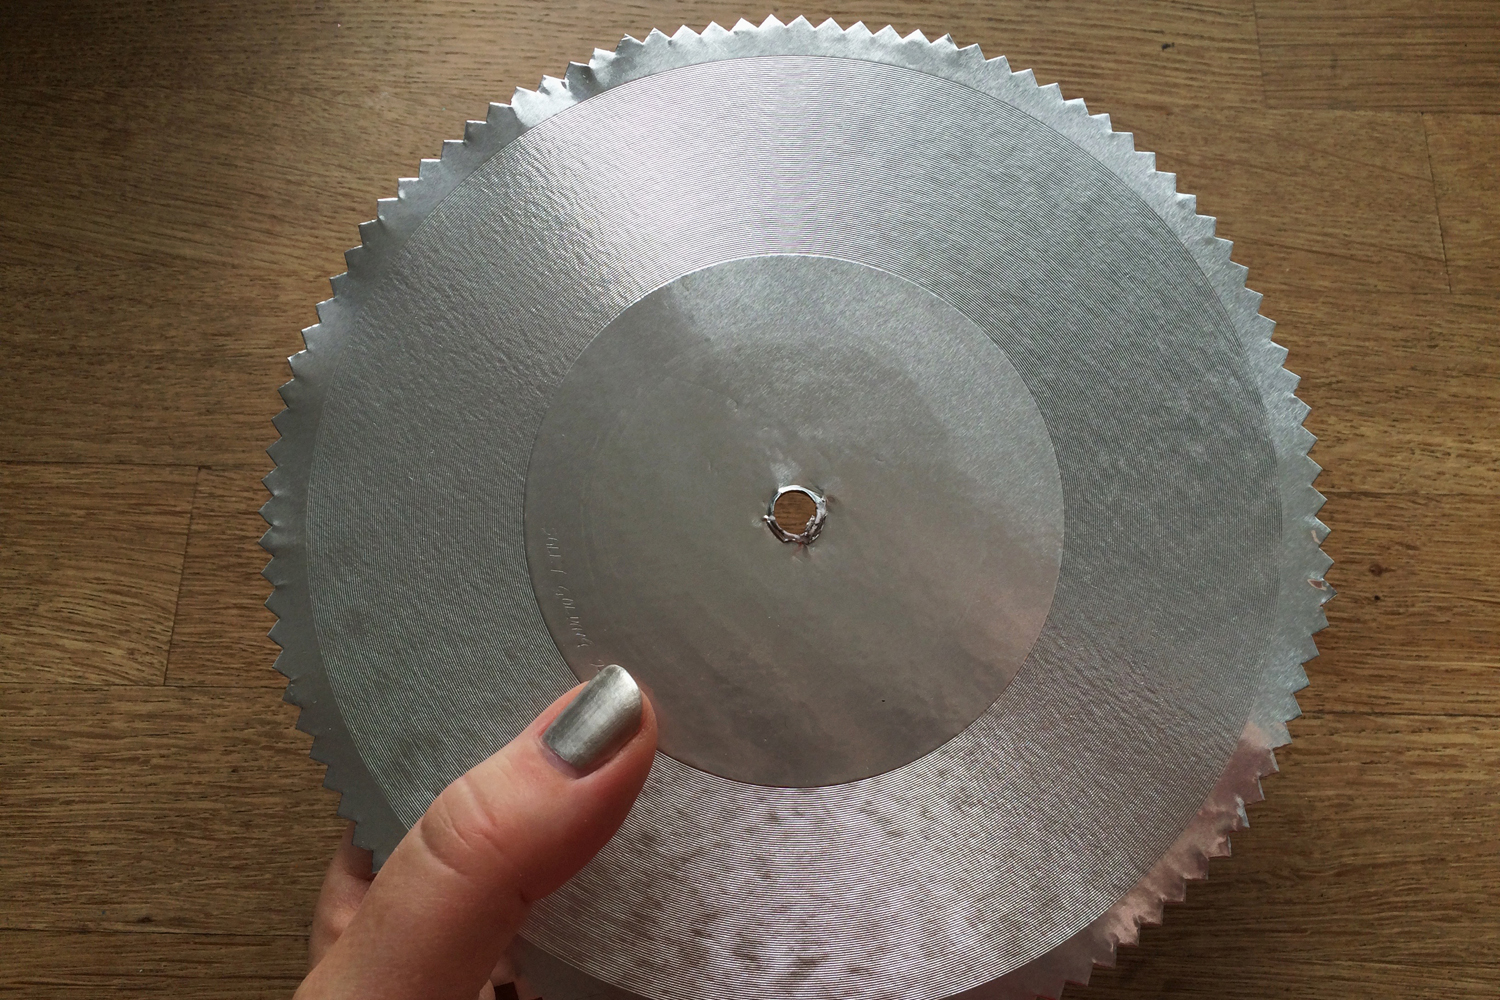 Lathe Cut Audio - Sounds hand lathe cut in edition, experimenting in primitive direct lathe cutting, playing back the friction of the amplified surface.